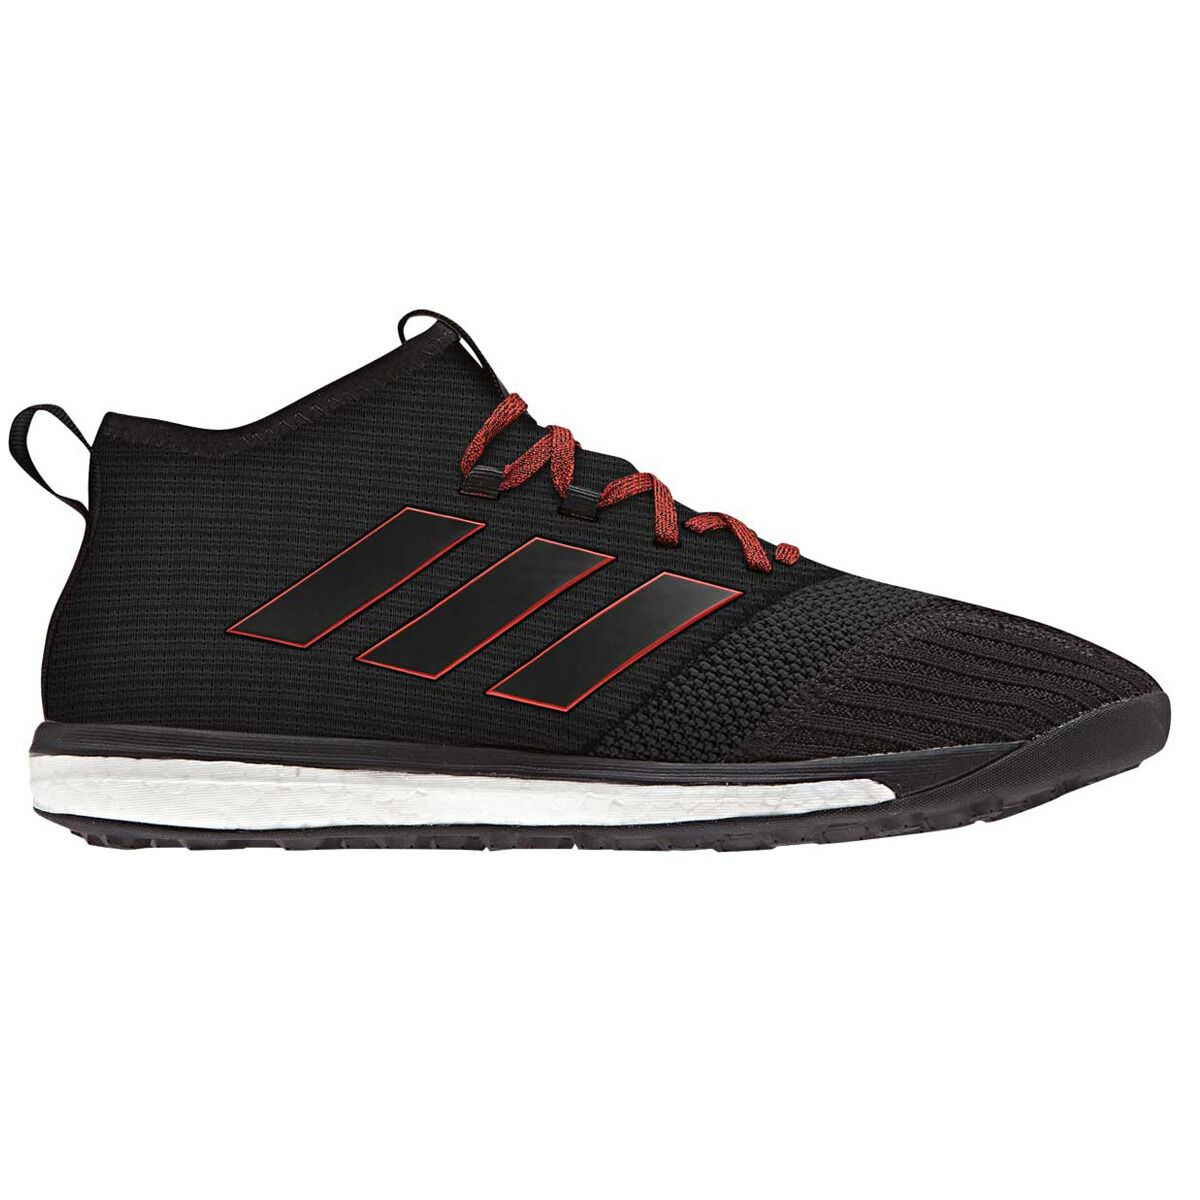 info for bb3c0 cf085 ... where to buy adidas ace tango 17.1 tr mens indoor soccer shoes black  red us 10